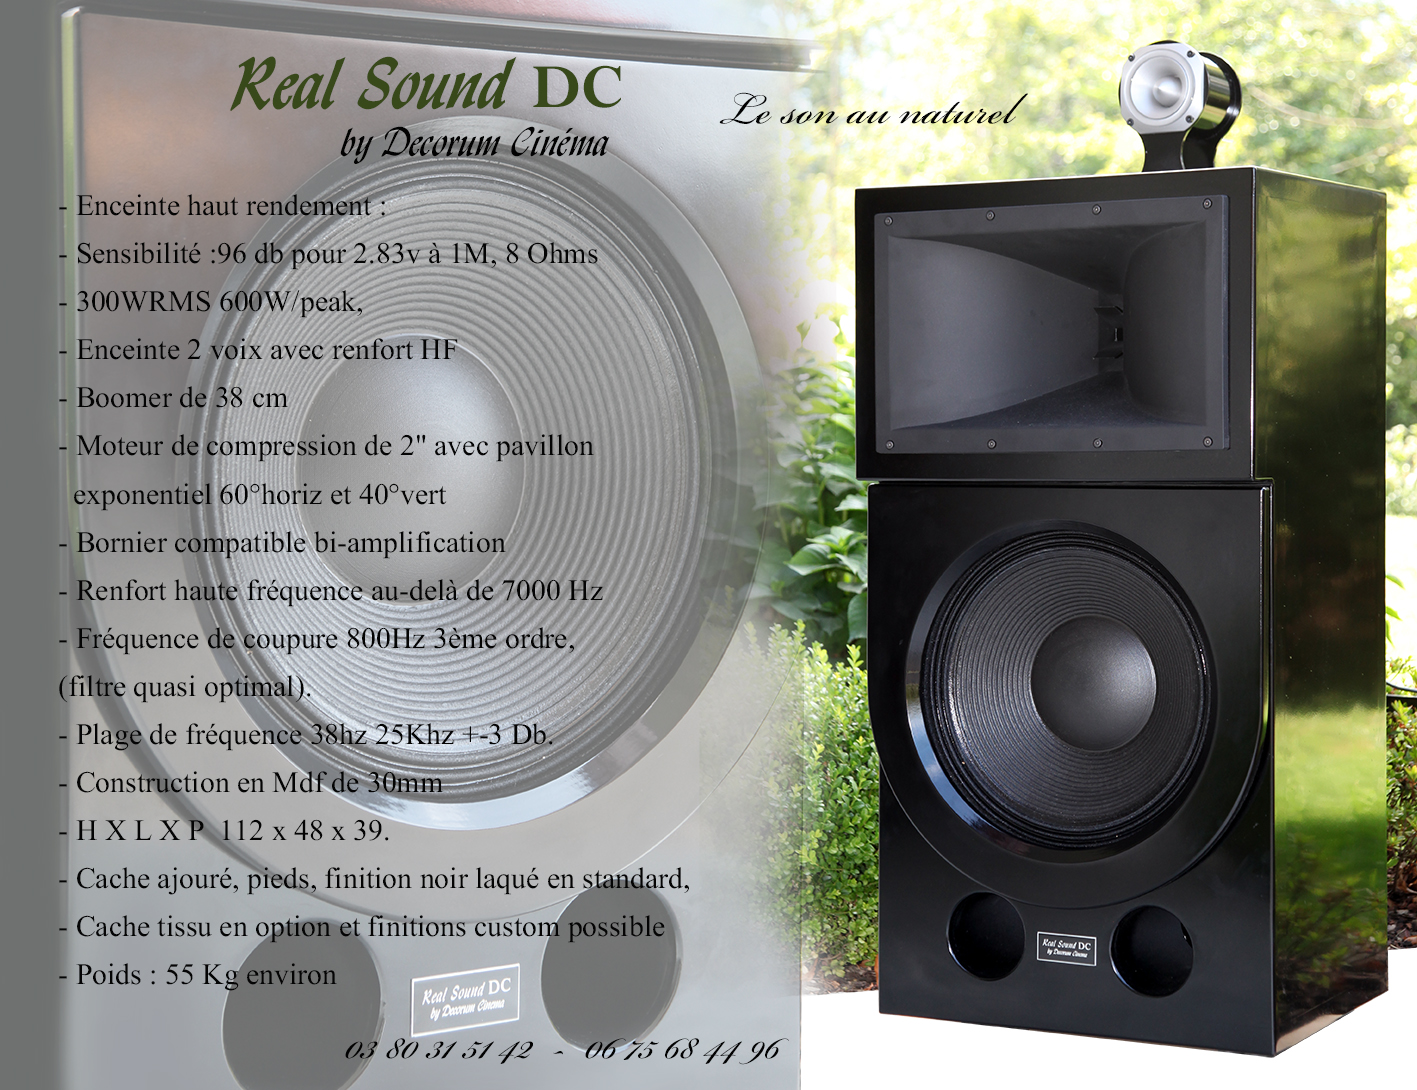 RealSoundDC 5-72